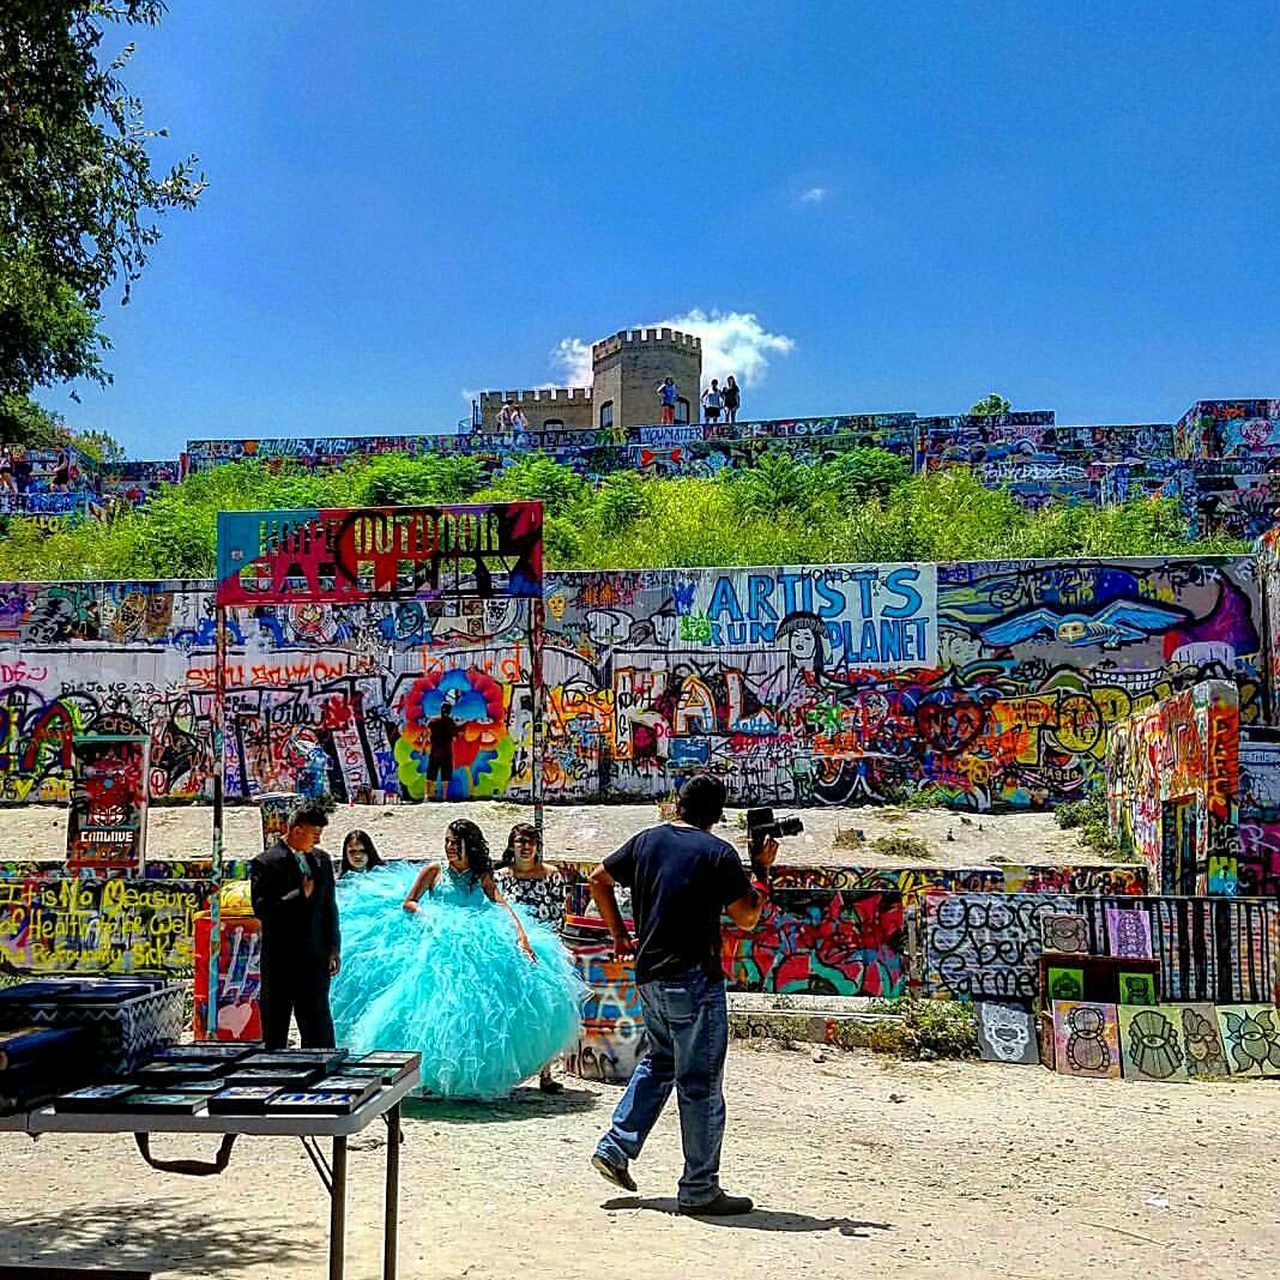 People And Places Austin Austin Texas Blue Clear Sky Creativity Outdoors City Life Multi Colored Keepaustinweird Quinceañera Graffiti Art Artgallery Art Wall Baylor Street